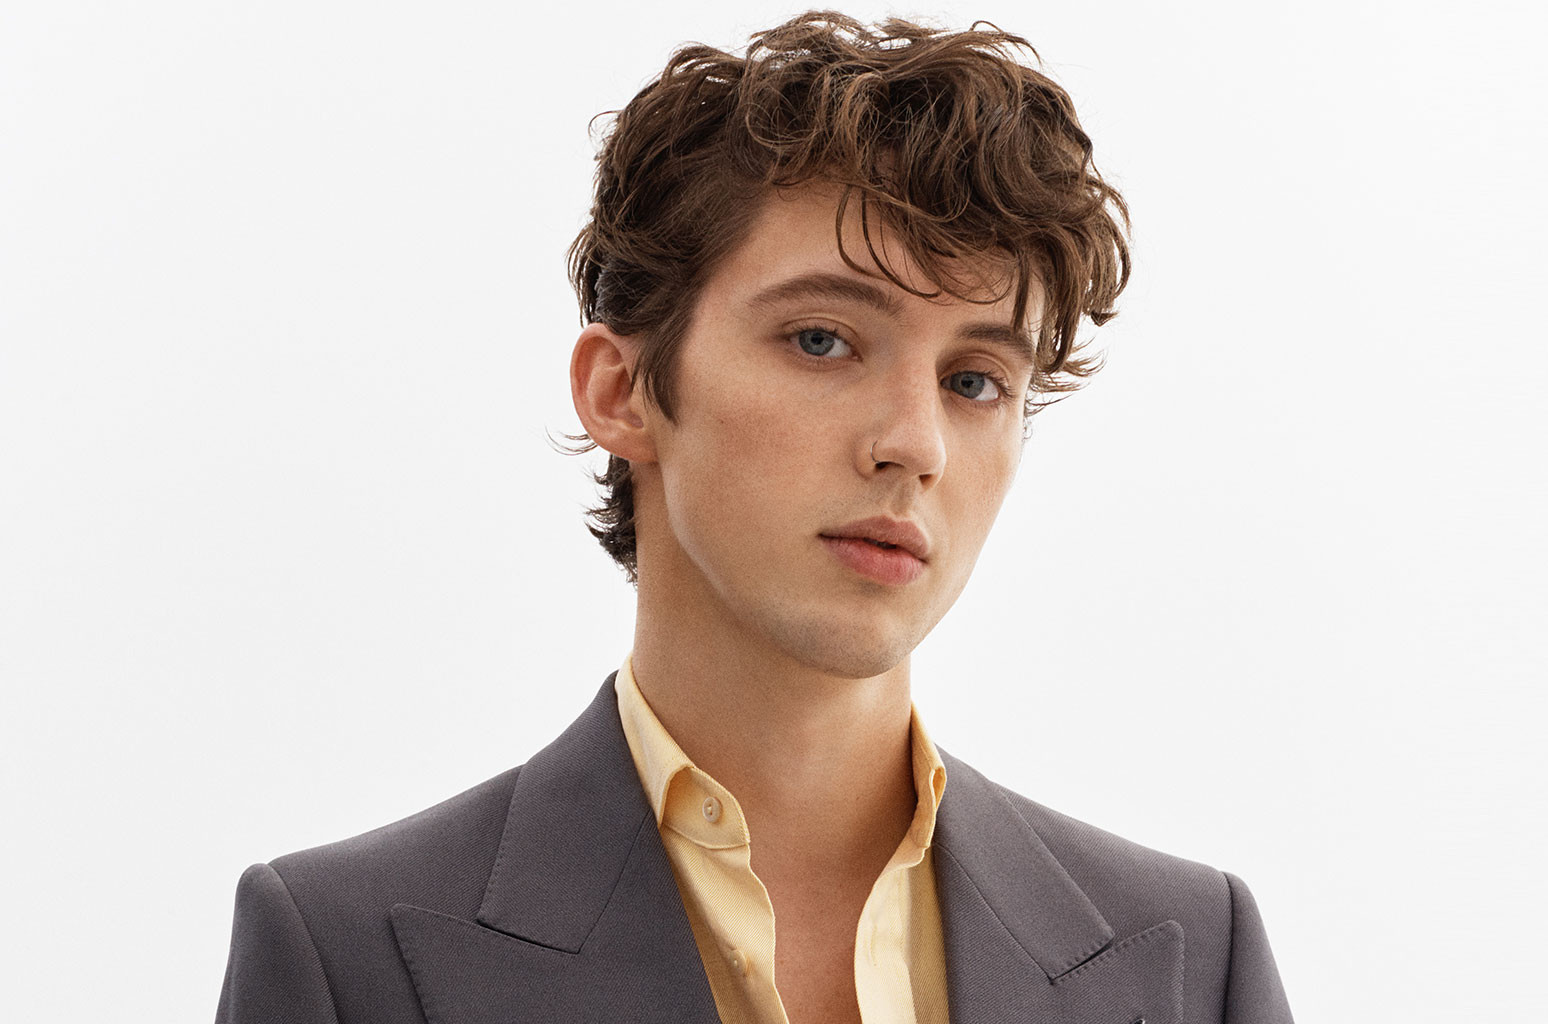 Troye Sivan Now Has a Wax Figure at Madame Tussauds